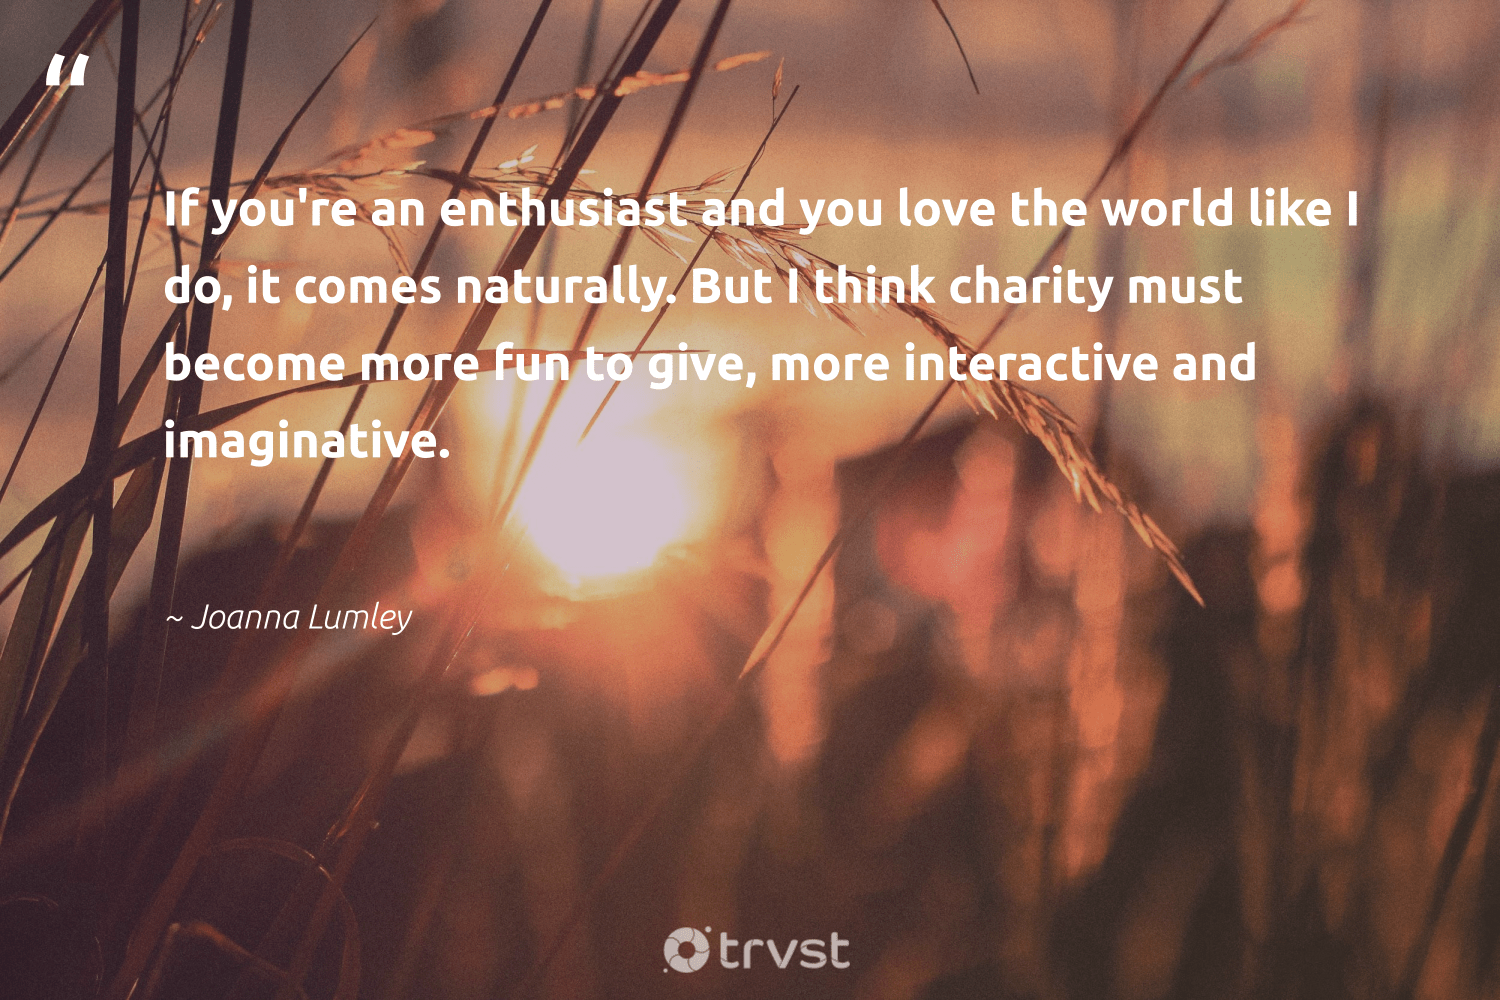 """""""If you're an enthusiast and you love the world like I do, it comes naturally. But I think charity must become more fun to give, more interactive and imaginative.""""  - Joanna Lumley #trvst #quotes #love #bethechange #impact #dogood #changetheworld #communities #dosomething #betterplanet #planetearthfirst #equalopportunity"""